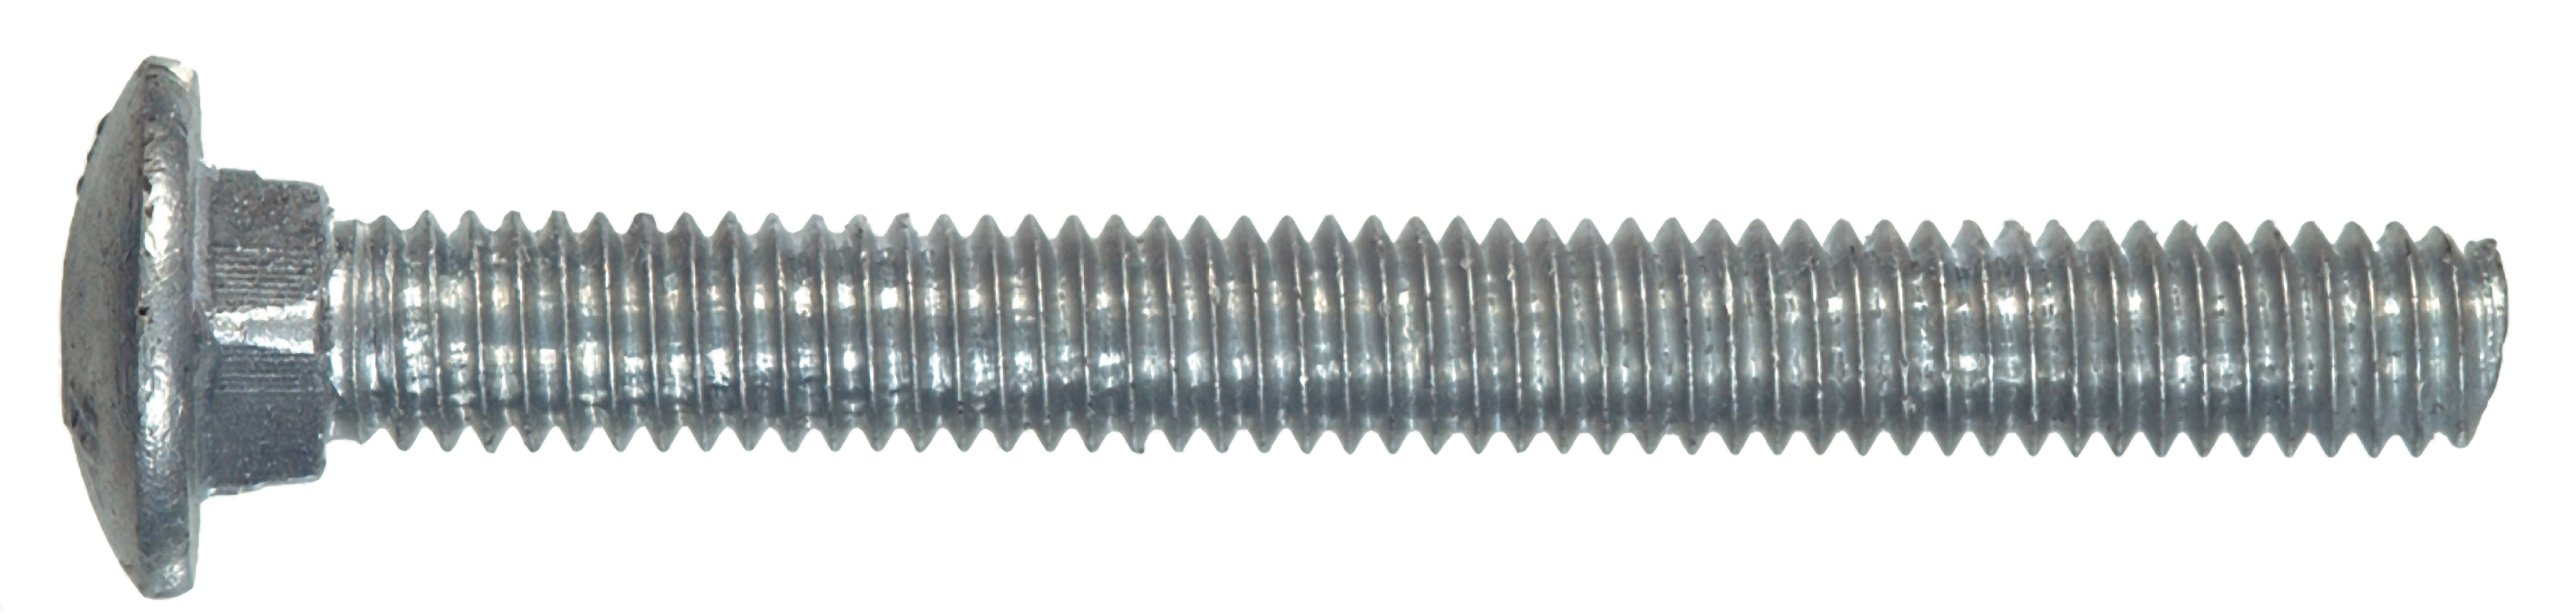 The Hillman Group 812569 Hot Dipped Galvanized Carriage Bolt, 3/8-Inch x 1-Inch, 100-Pack by The Hillman Group